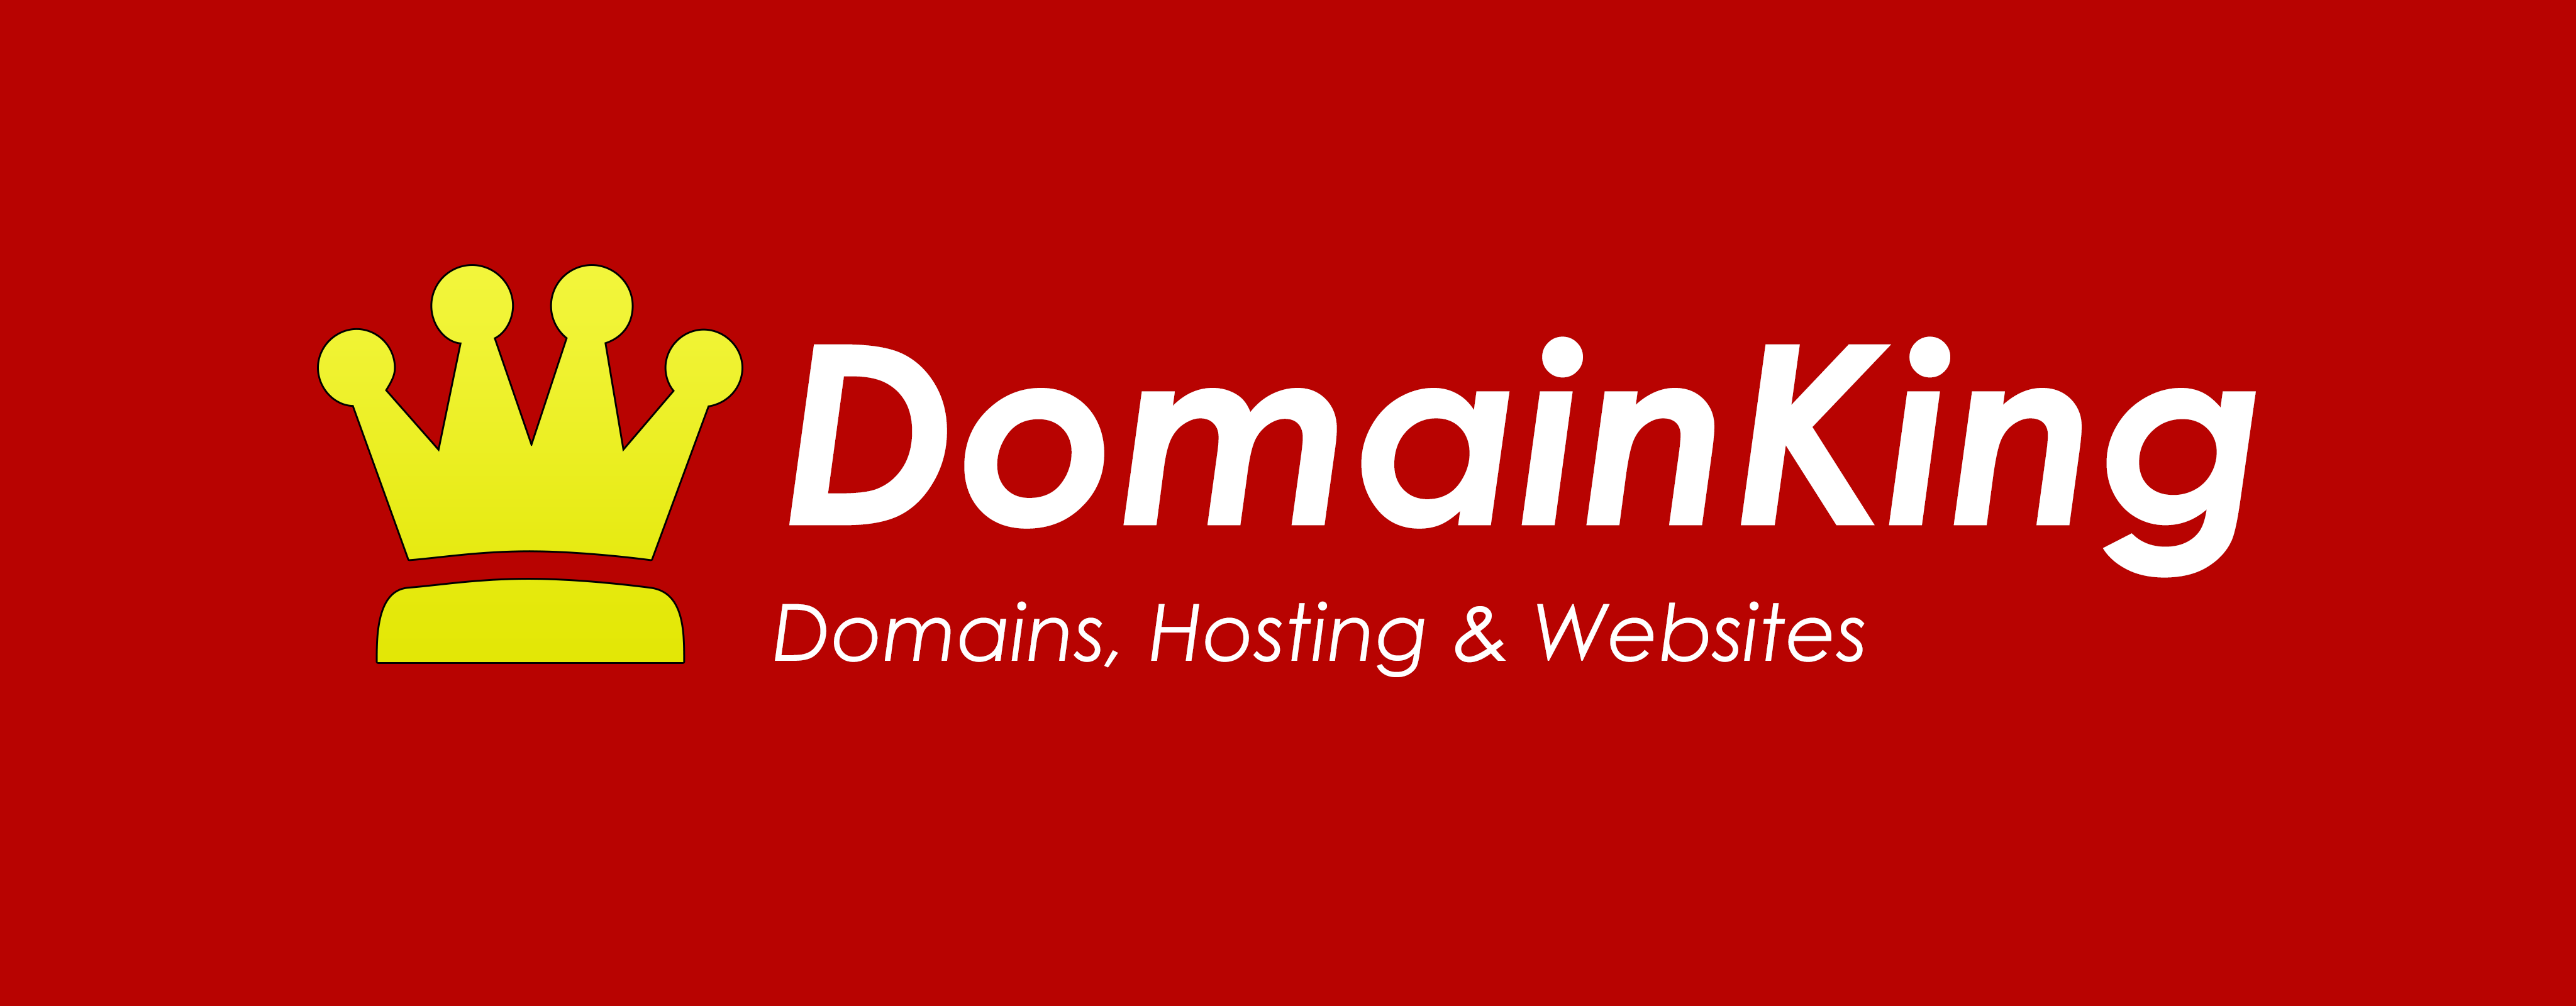 Get Your Business Online with Affordable Web Hosting from DomainKing.NG